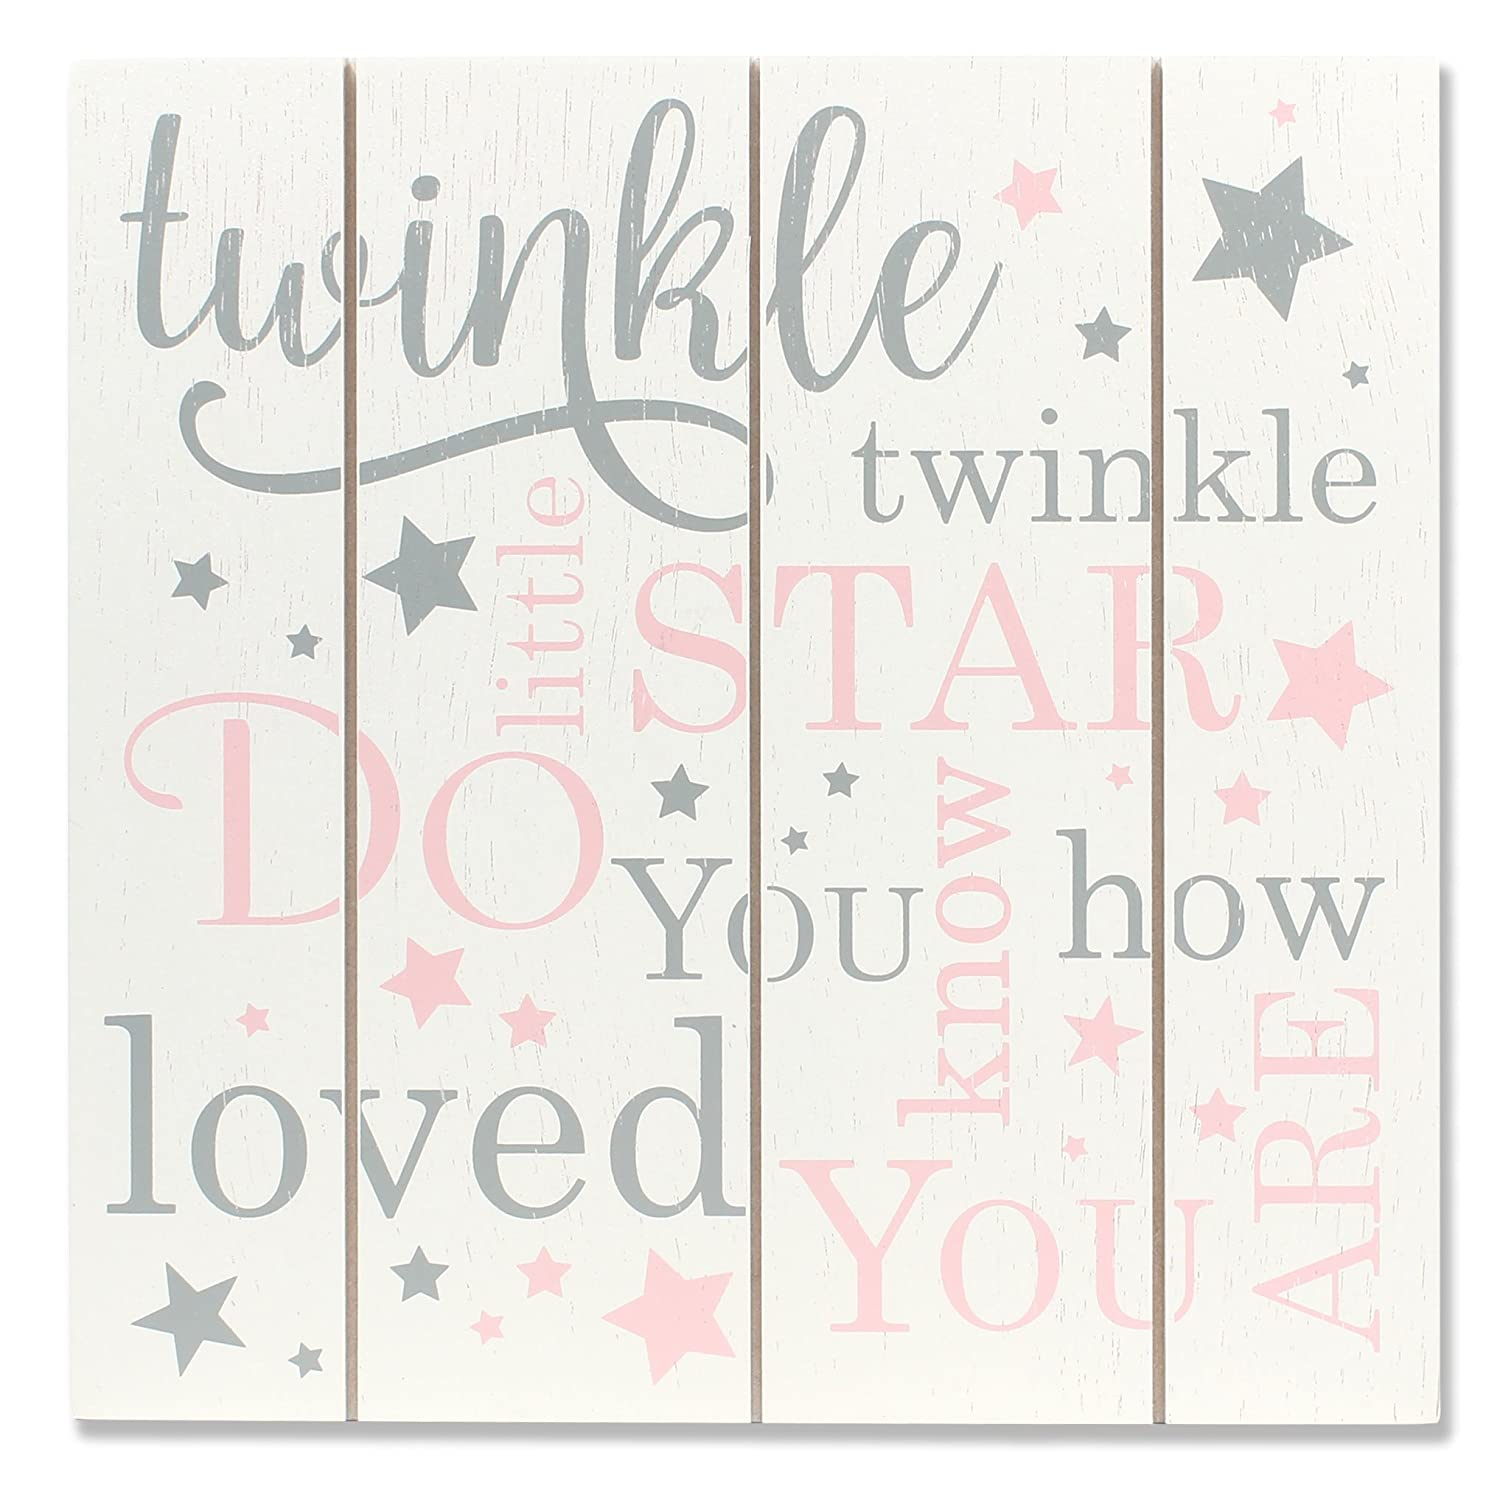 Lawrence Frames 9x9 Distressed White and Pink Wood Panel Sign Twinkle 377699